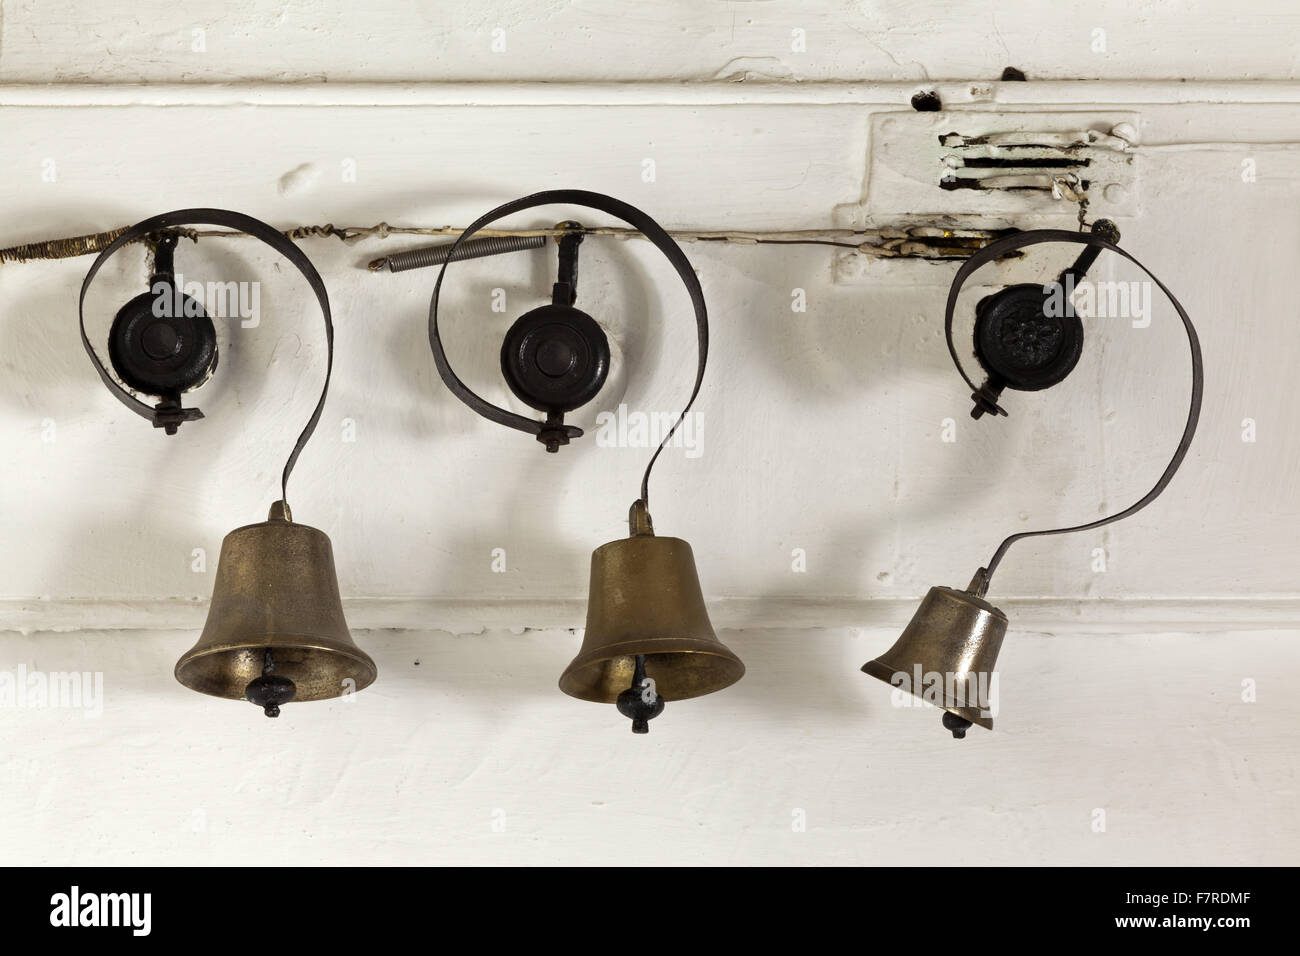 Wonderful Servants Bells In The Kitchen At Eyam Hall And Craft Centre, Derbyshire.  Eyam Hall Is An Unspoilt Example Of A Gritstone Jacobean Manor House, ...